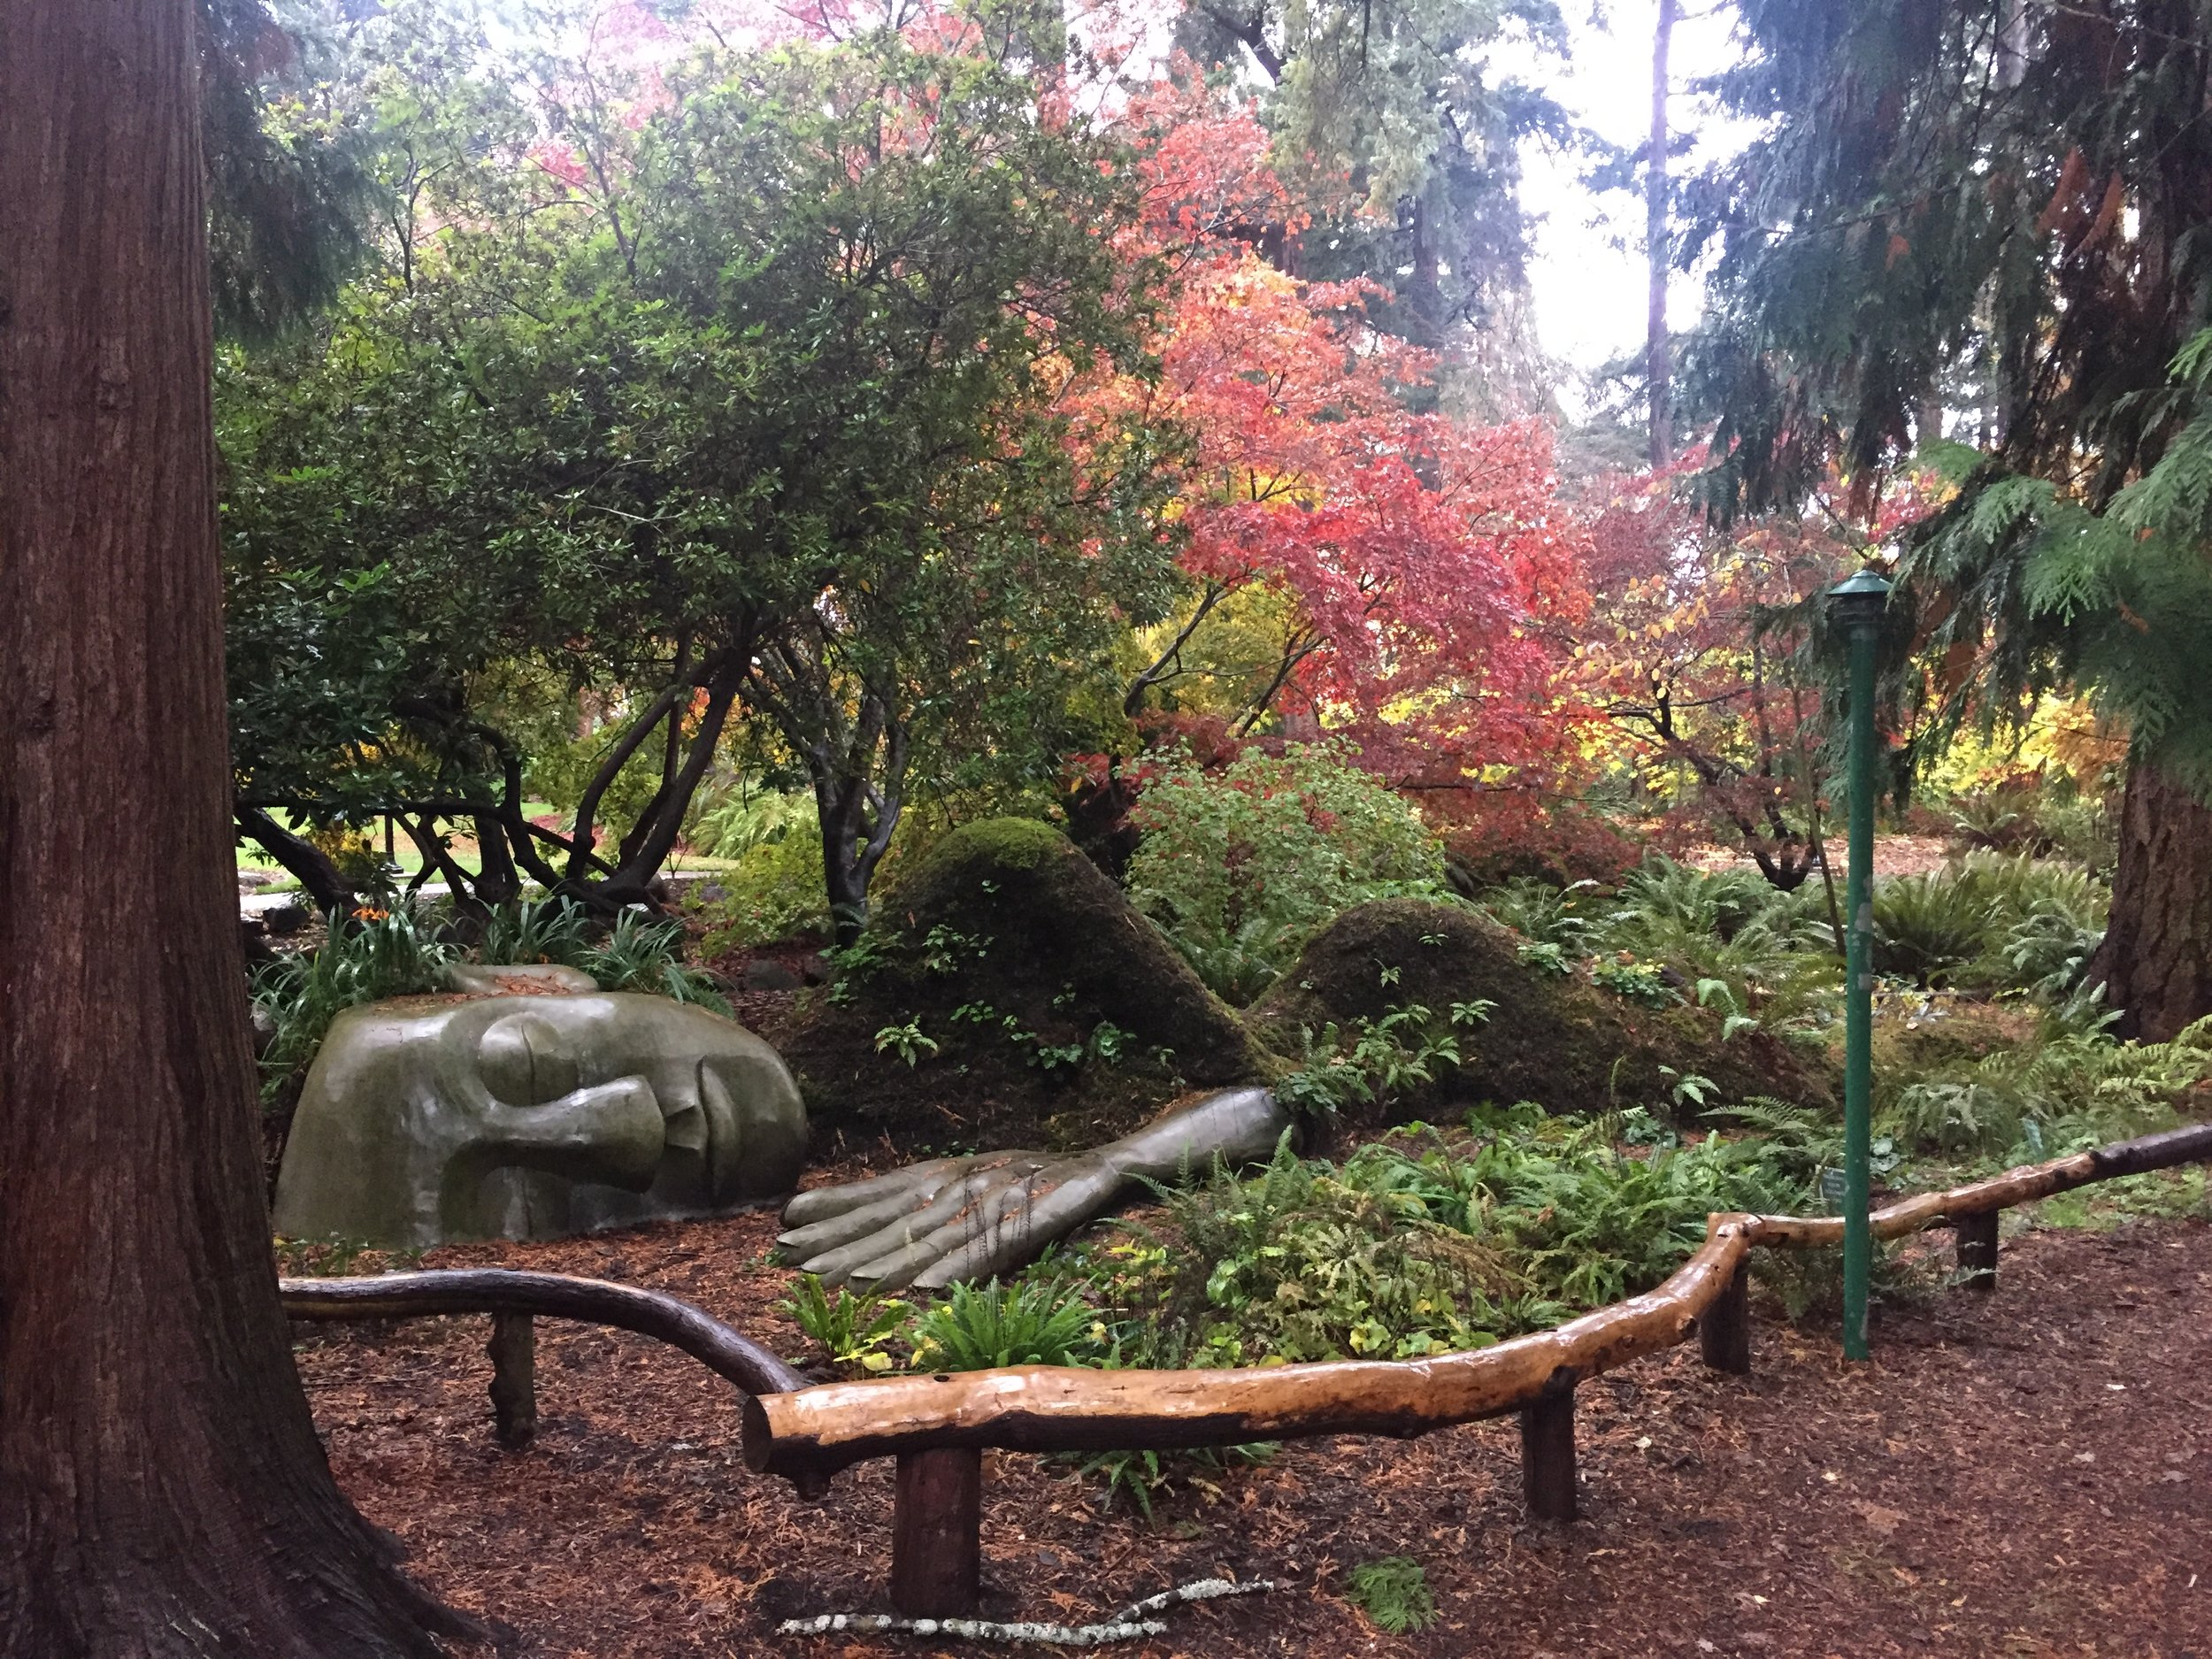 The sleeping moss lady at Beacon Hill Park